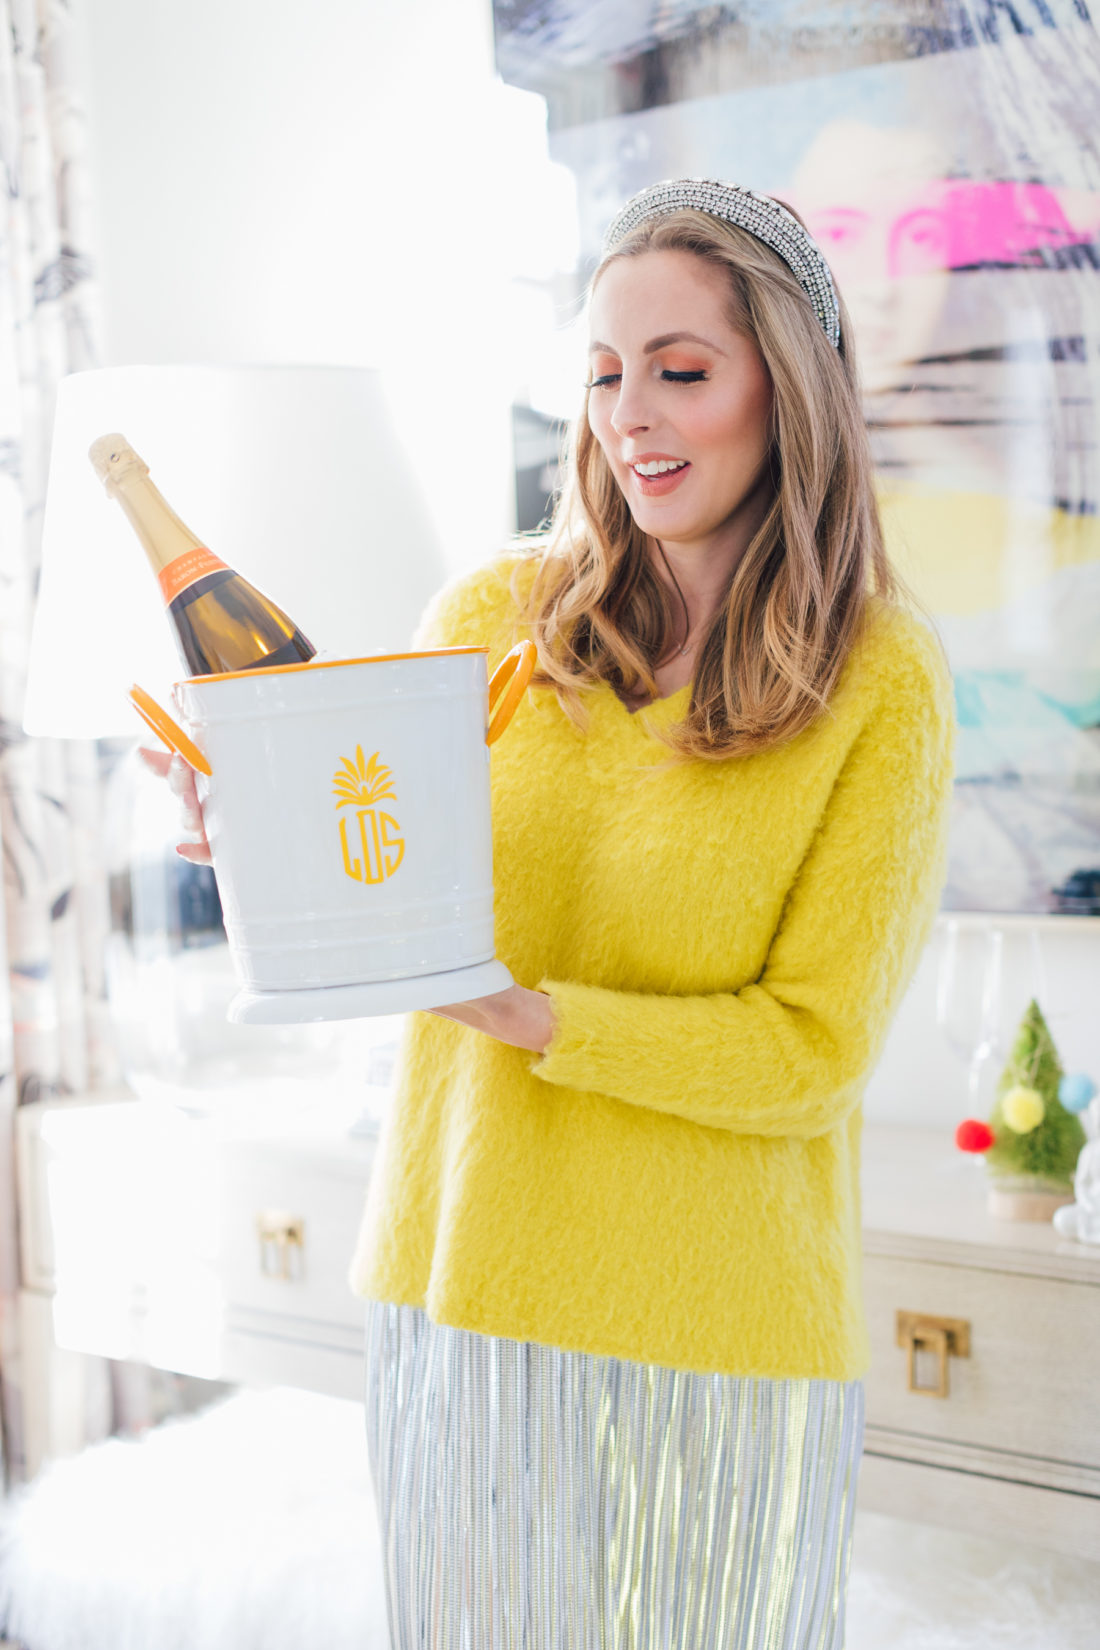 Eva Amurri Martino holds one of her favorite hostess gifts under $50: a Monogrammed Mark & Graham Enamel Ice Bucket